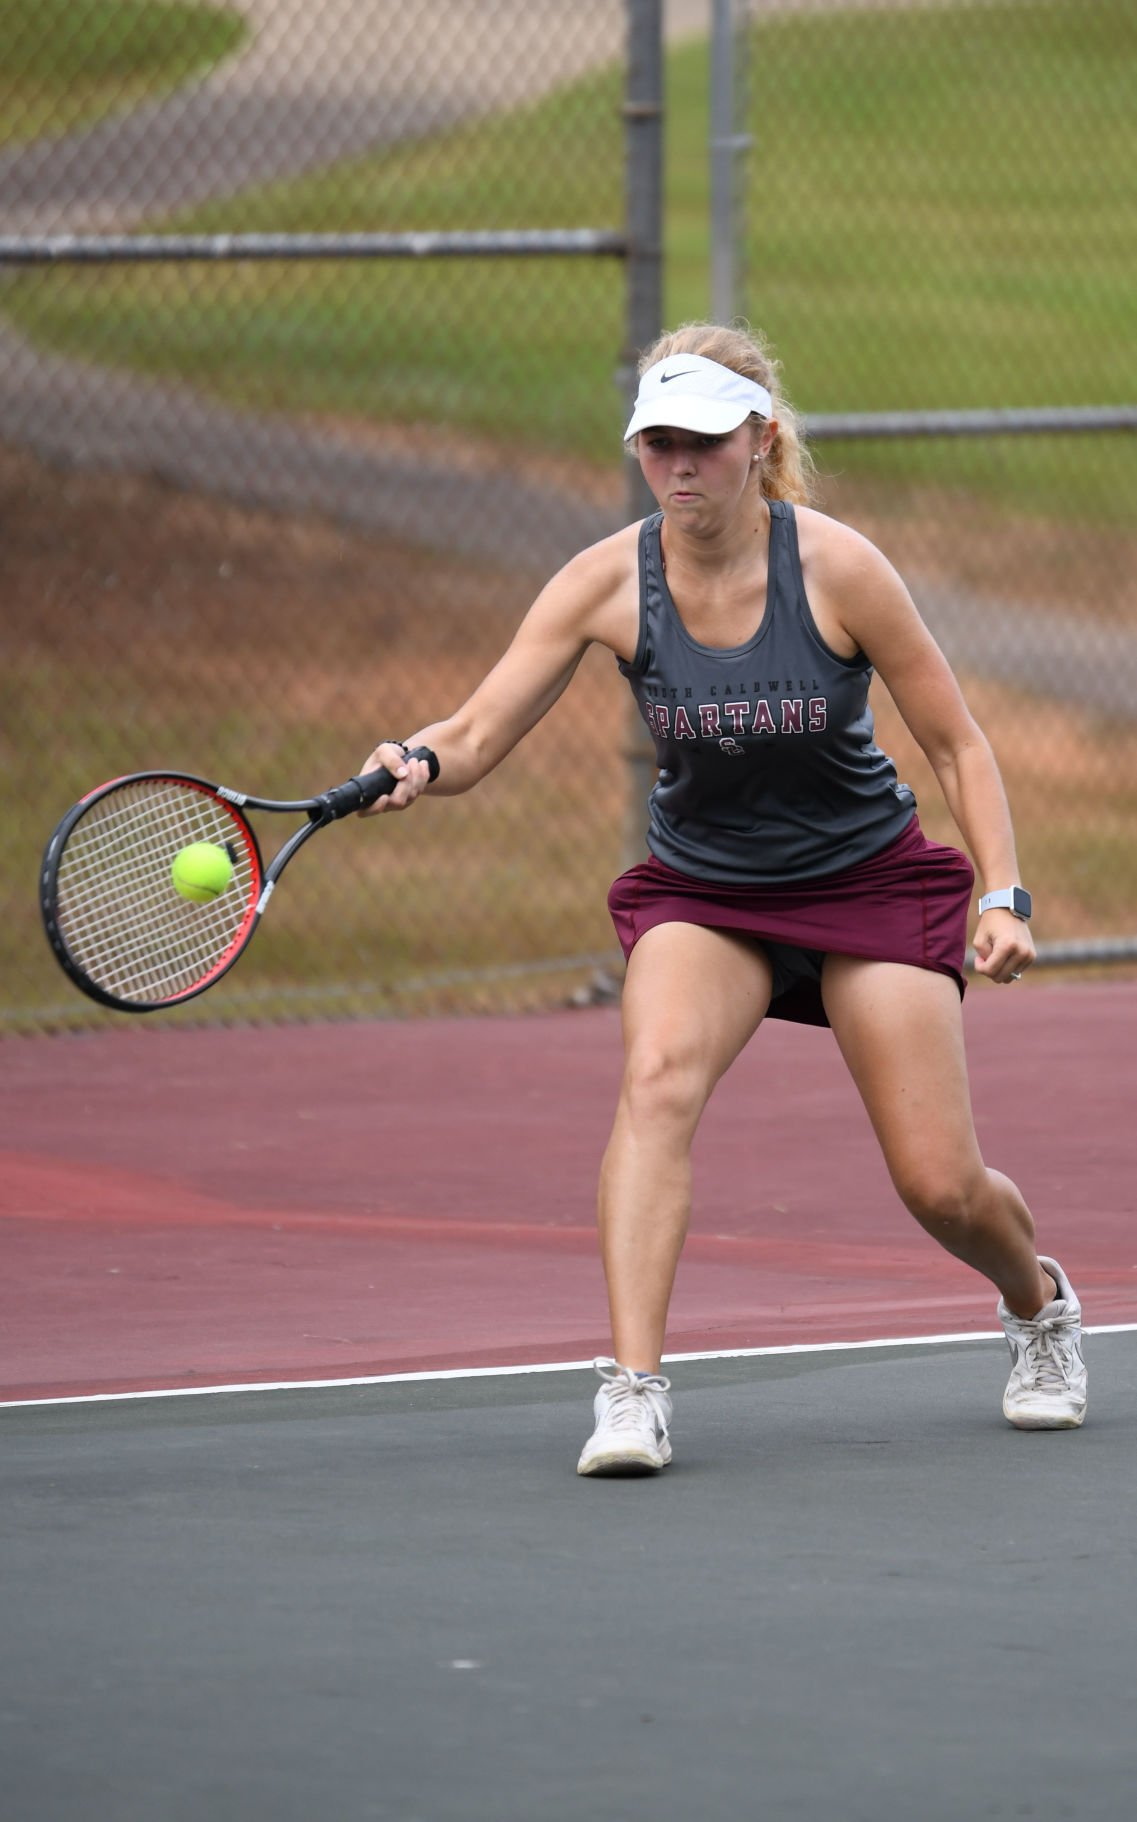 Another close finish: Panthers top Spartans with mid-match run